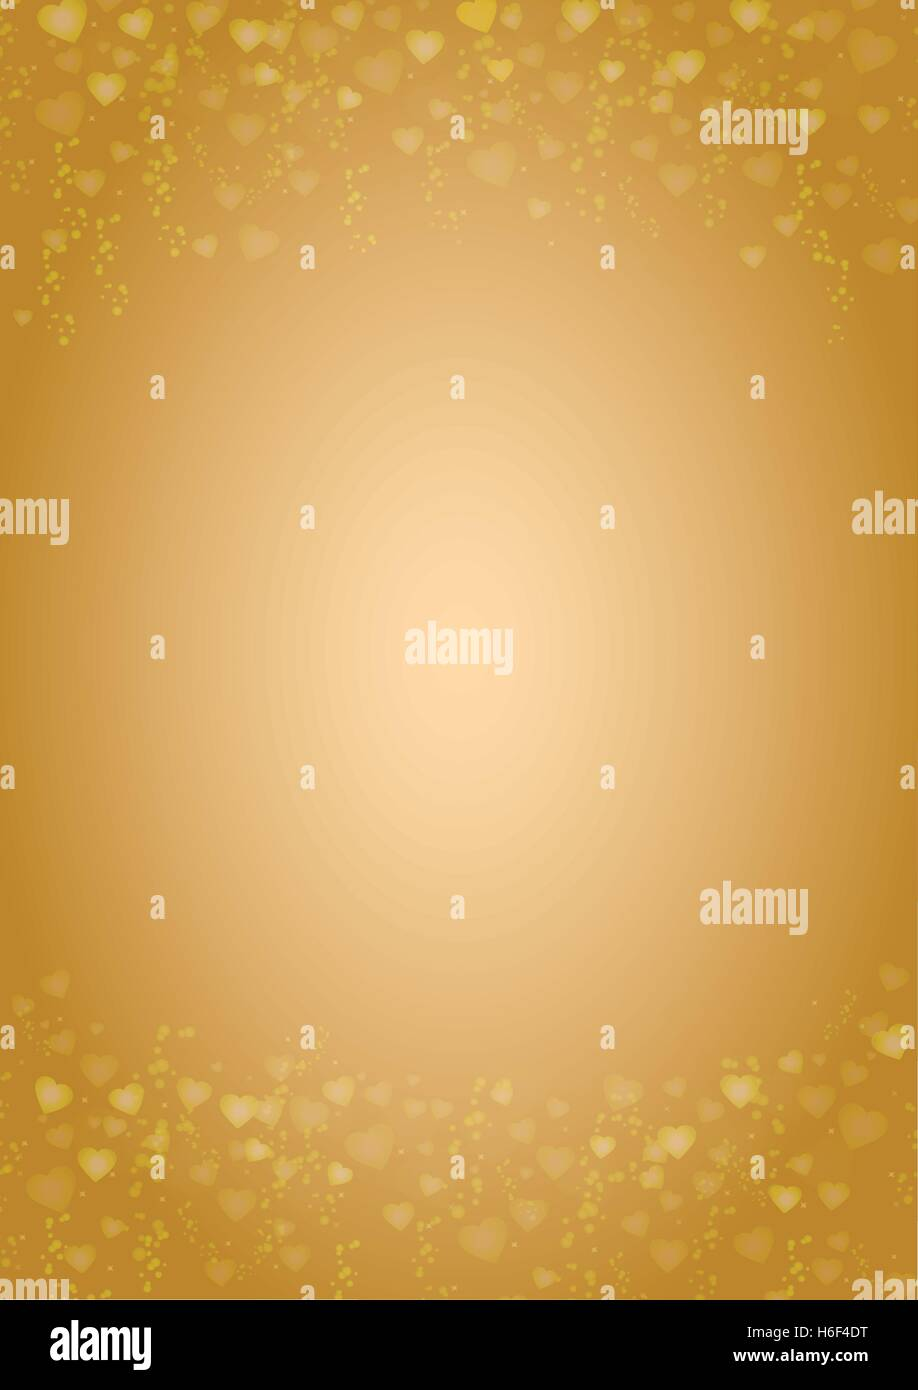 A4 size vertical gold background with hearts header and footer Stock Vector